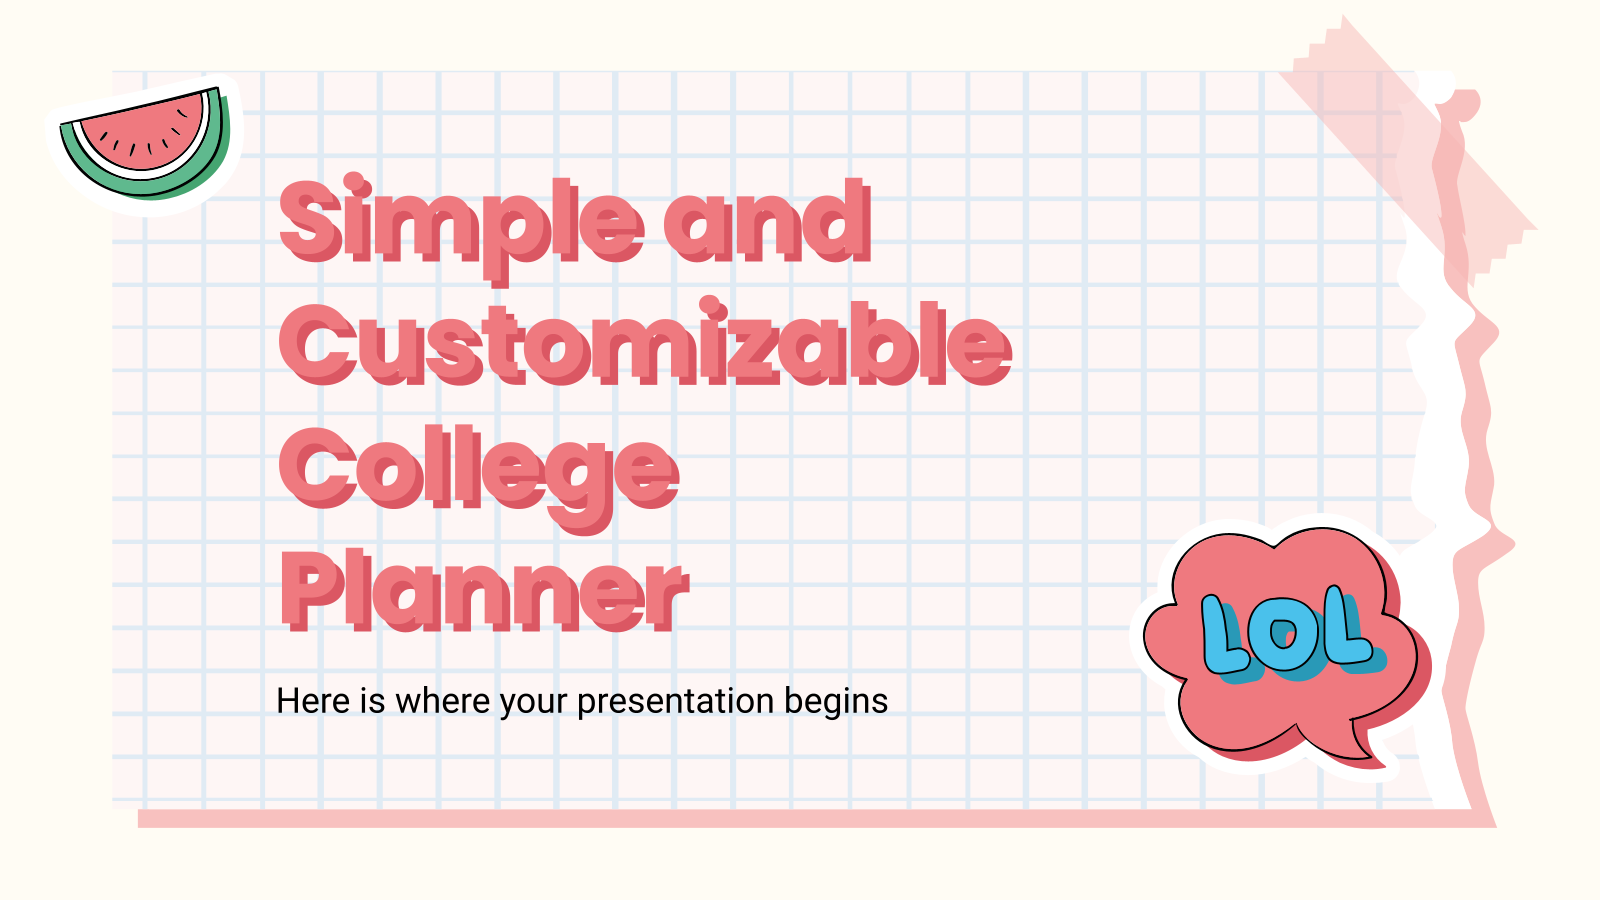 Simple and Customizable College Planner presentation template